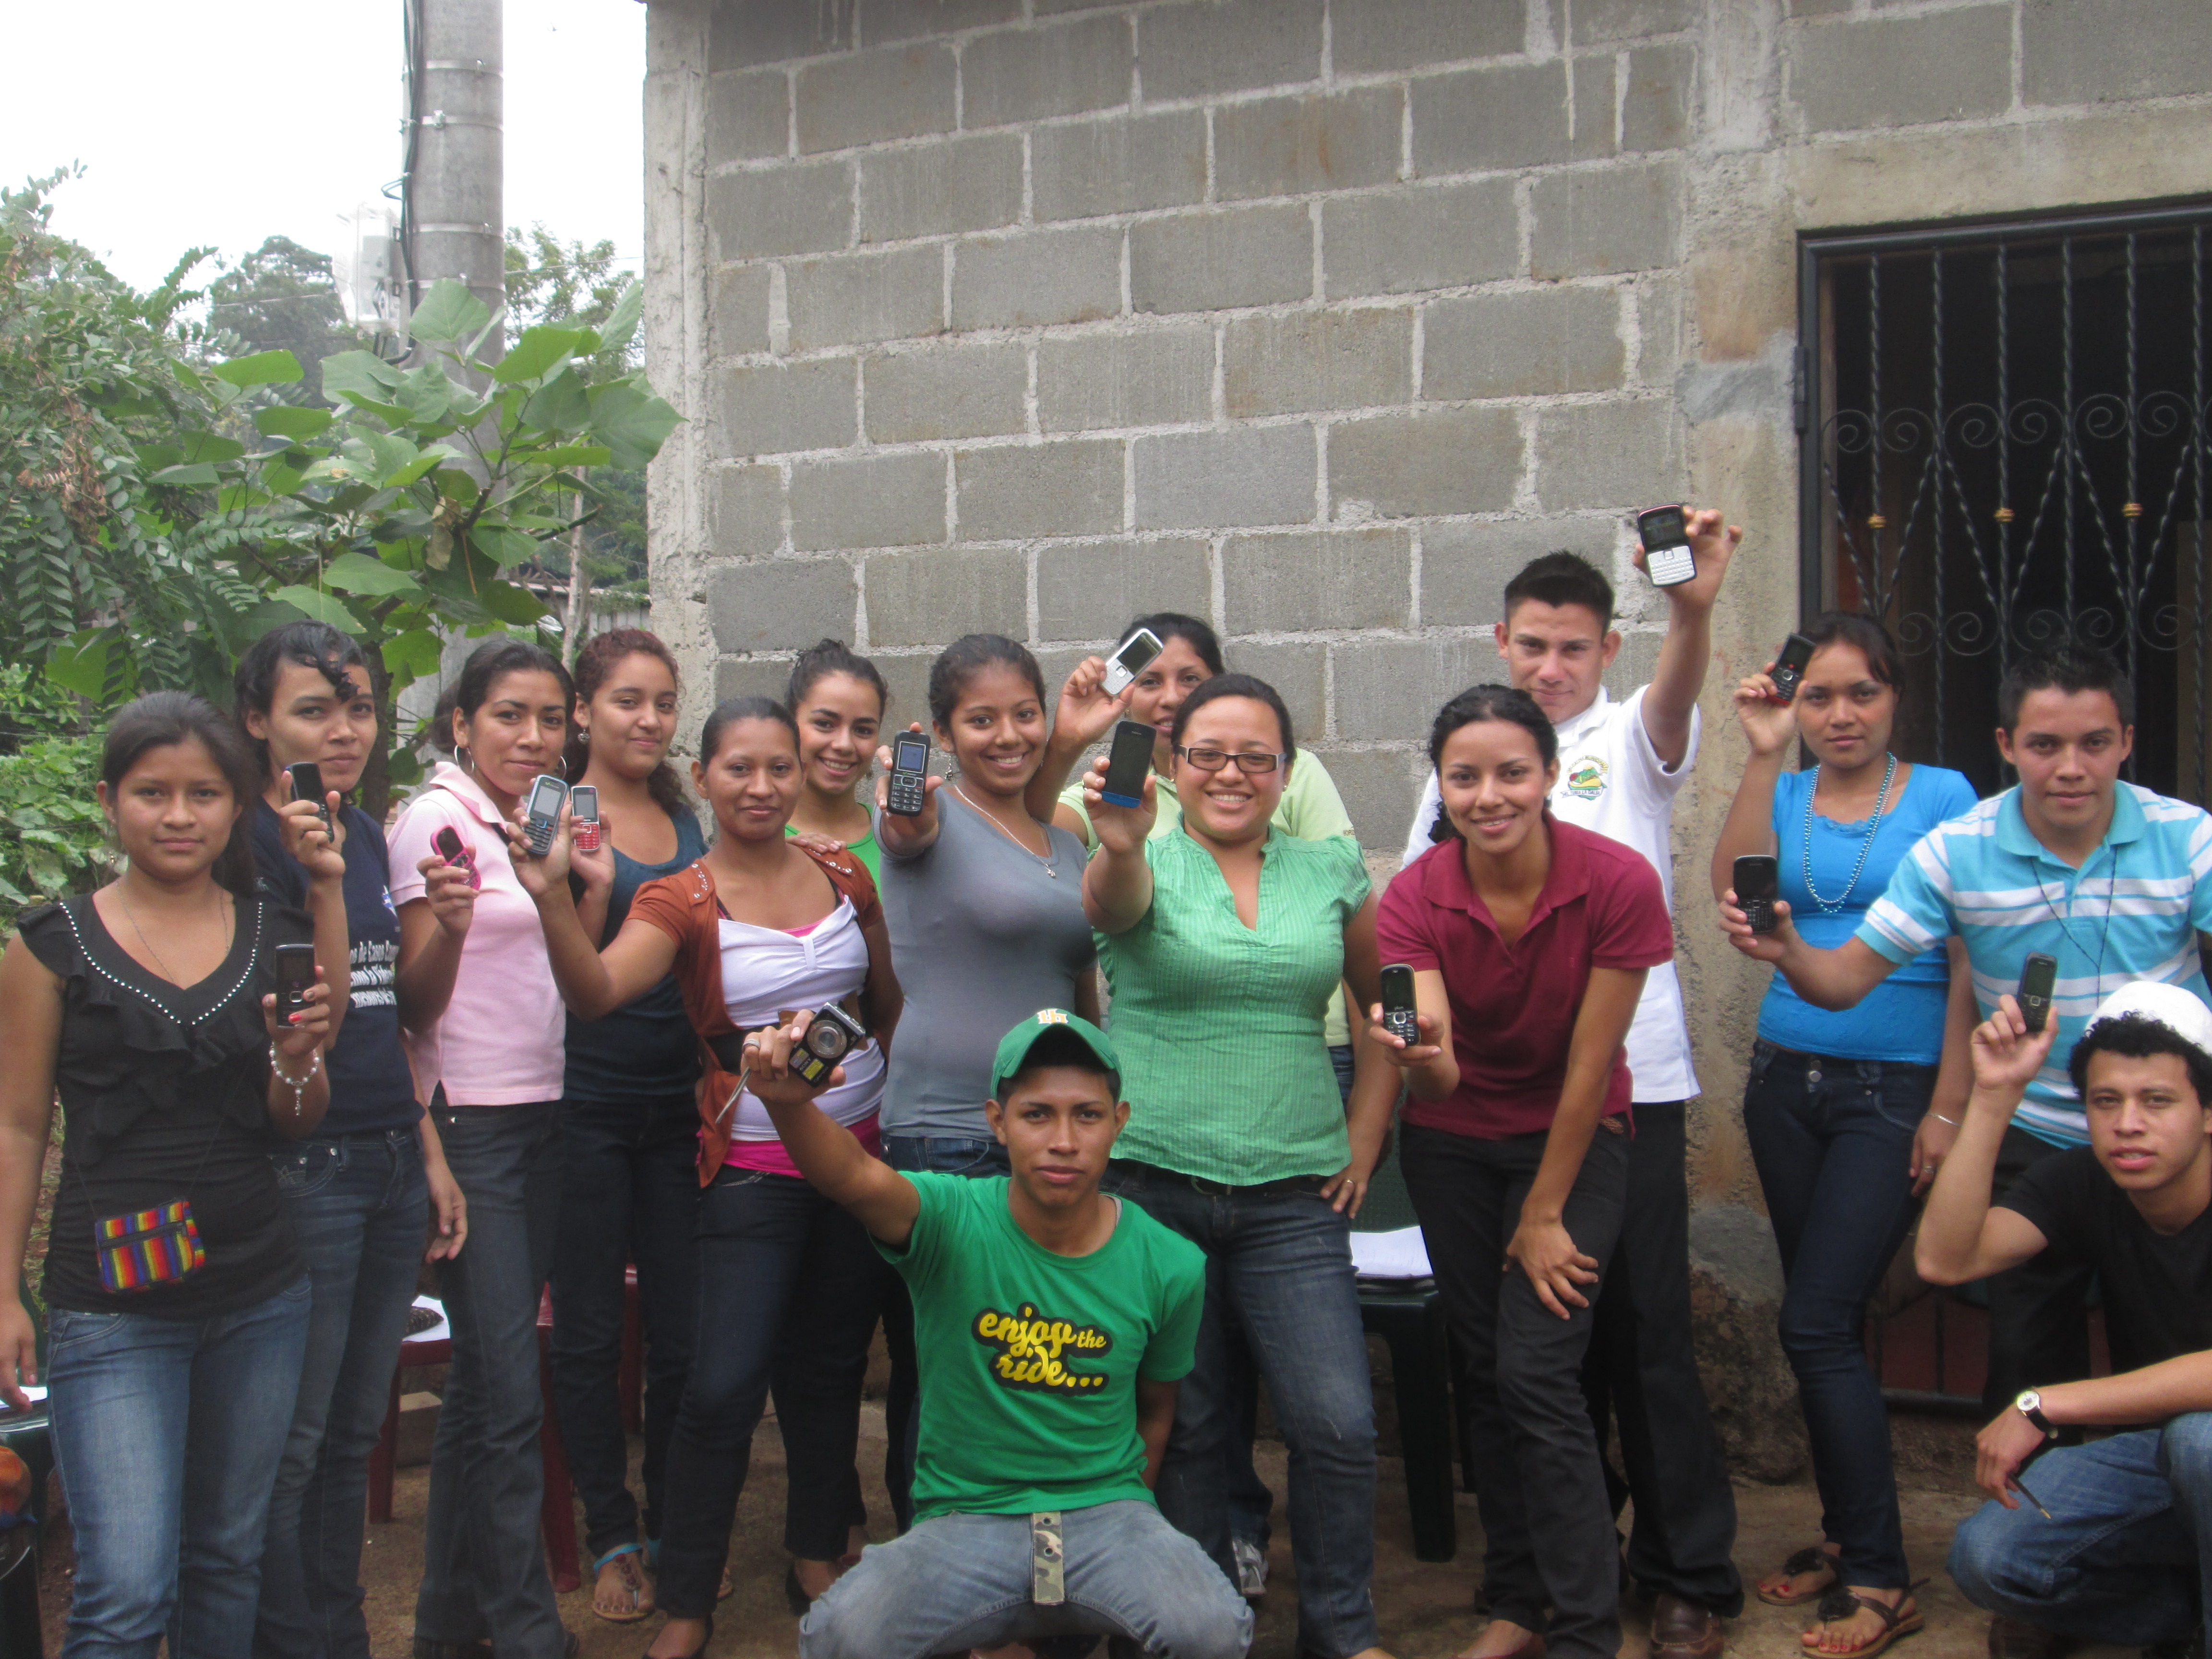 Nicaraguan youth group ready for ChatSalud 2